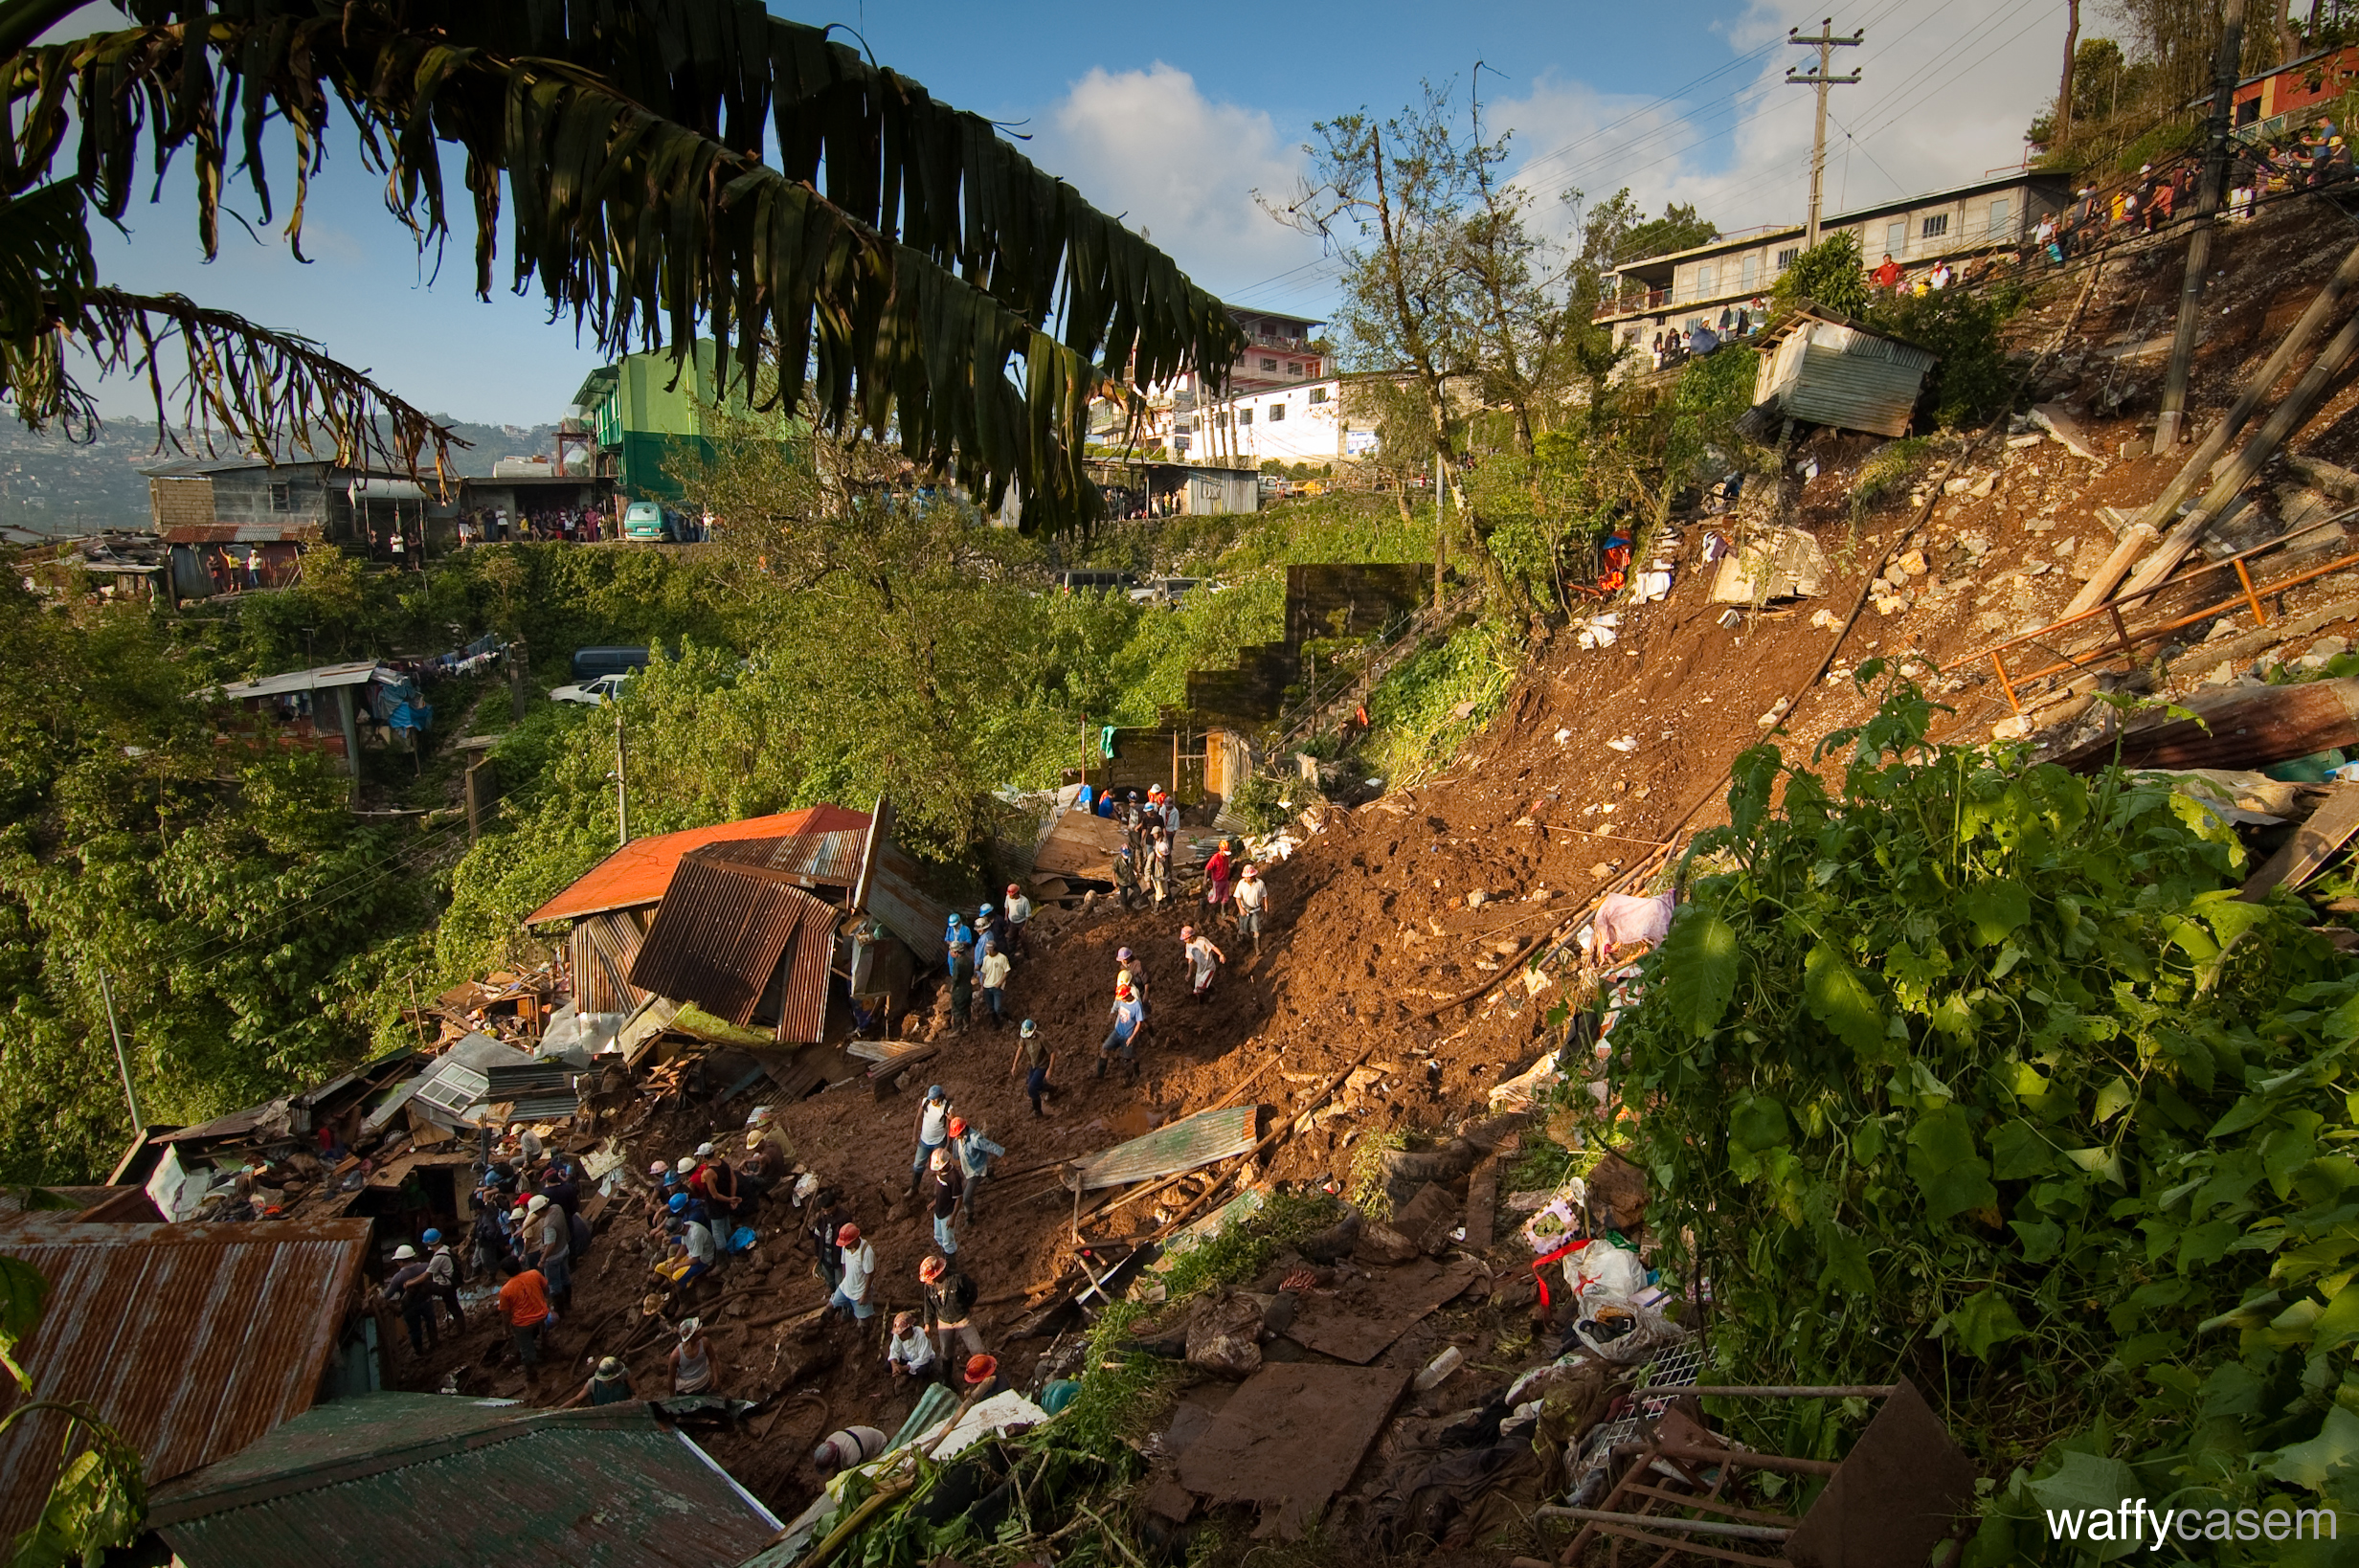 philippines landslide When the international criminal court first said it was looking into widespread murders under president rodrigo duterte's antidrug campaign in the philippines, he said he welcomed a chance.